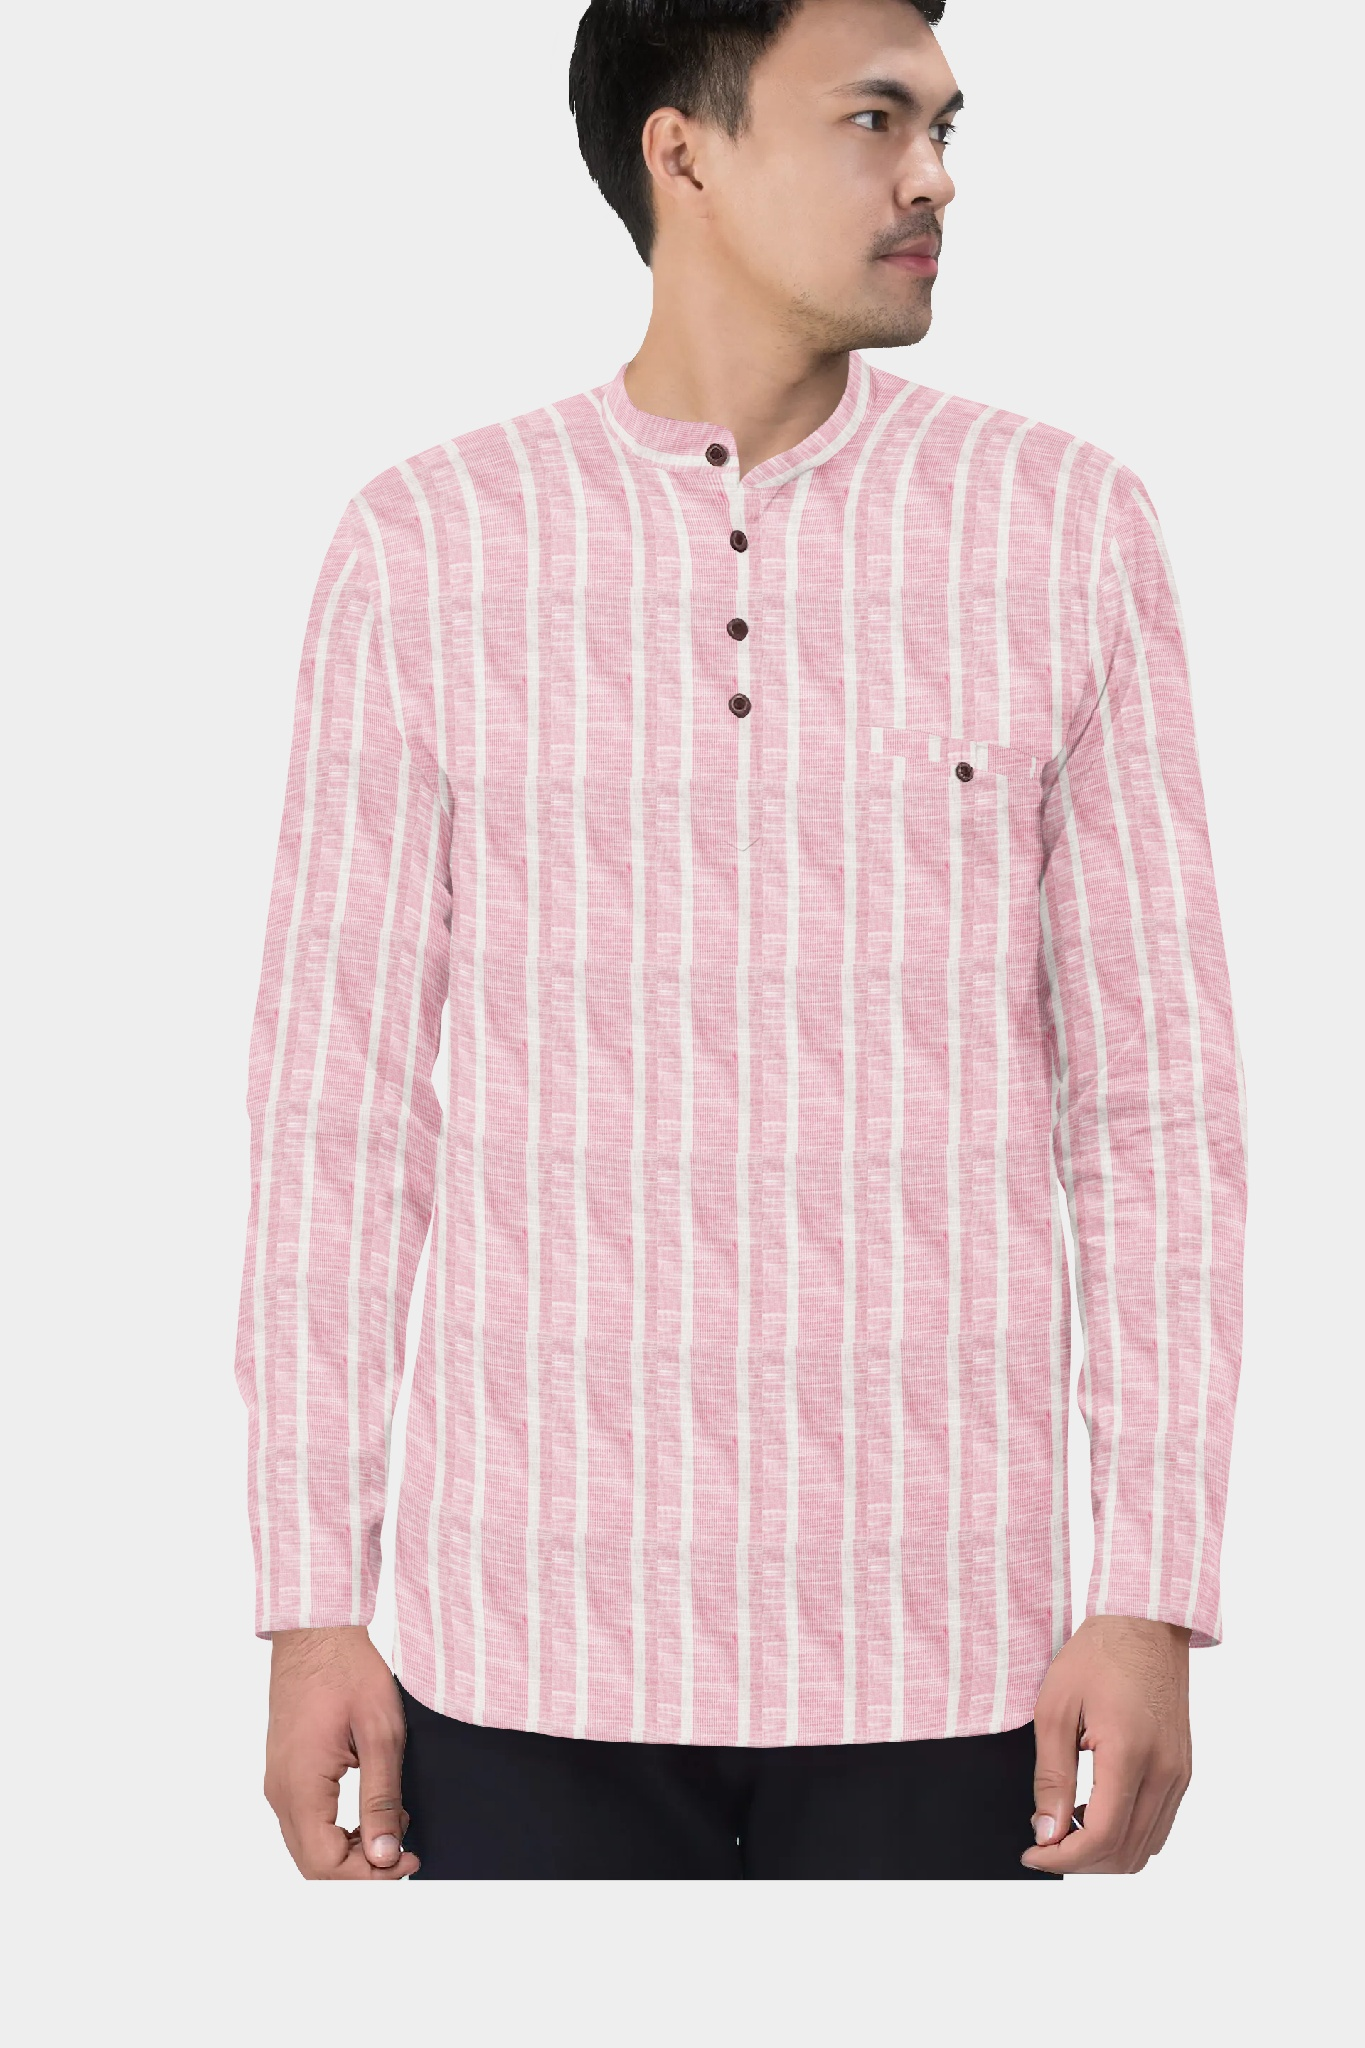 /home/customer/www/fabartcraft.com/public_html/uploadshttps://www.shopolics.com/uploads/images/medium/Pink-White-Cotton-Short-Kurta-35427.jpg